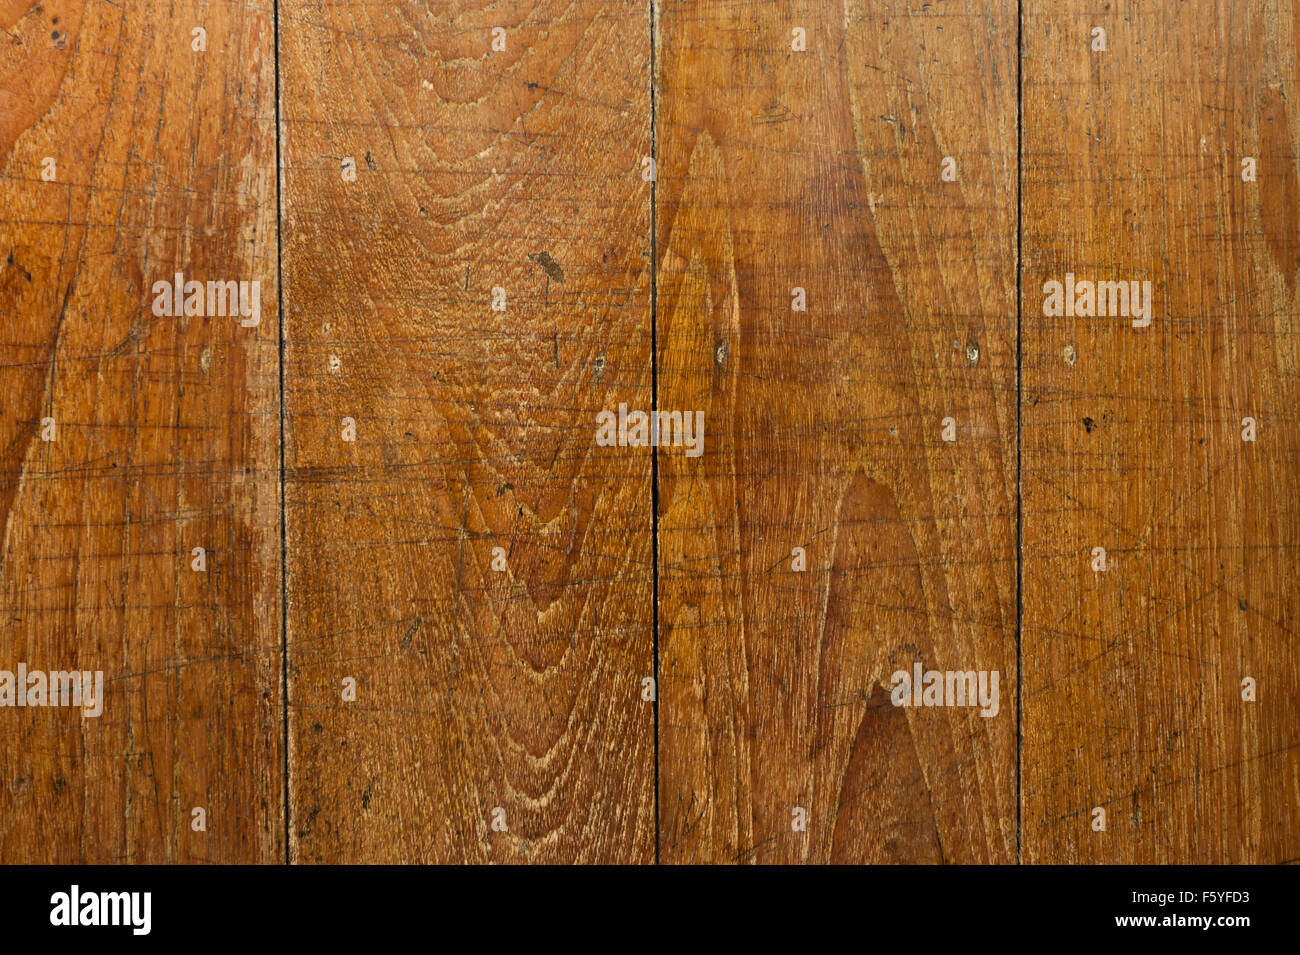 Wooden Table Texture - Stock Image